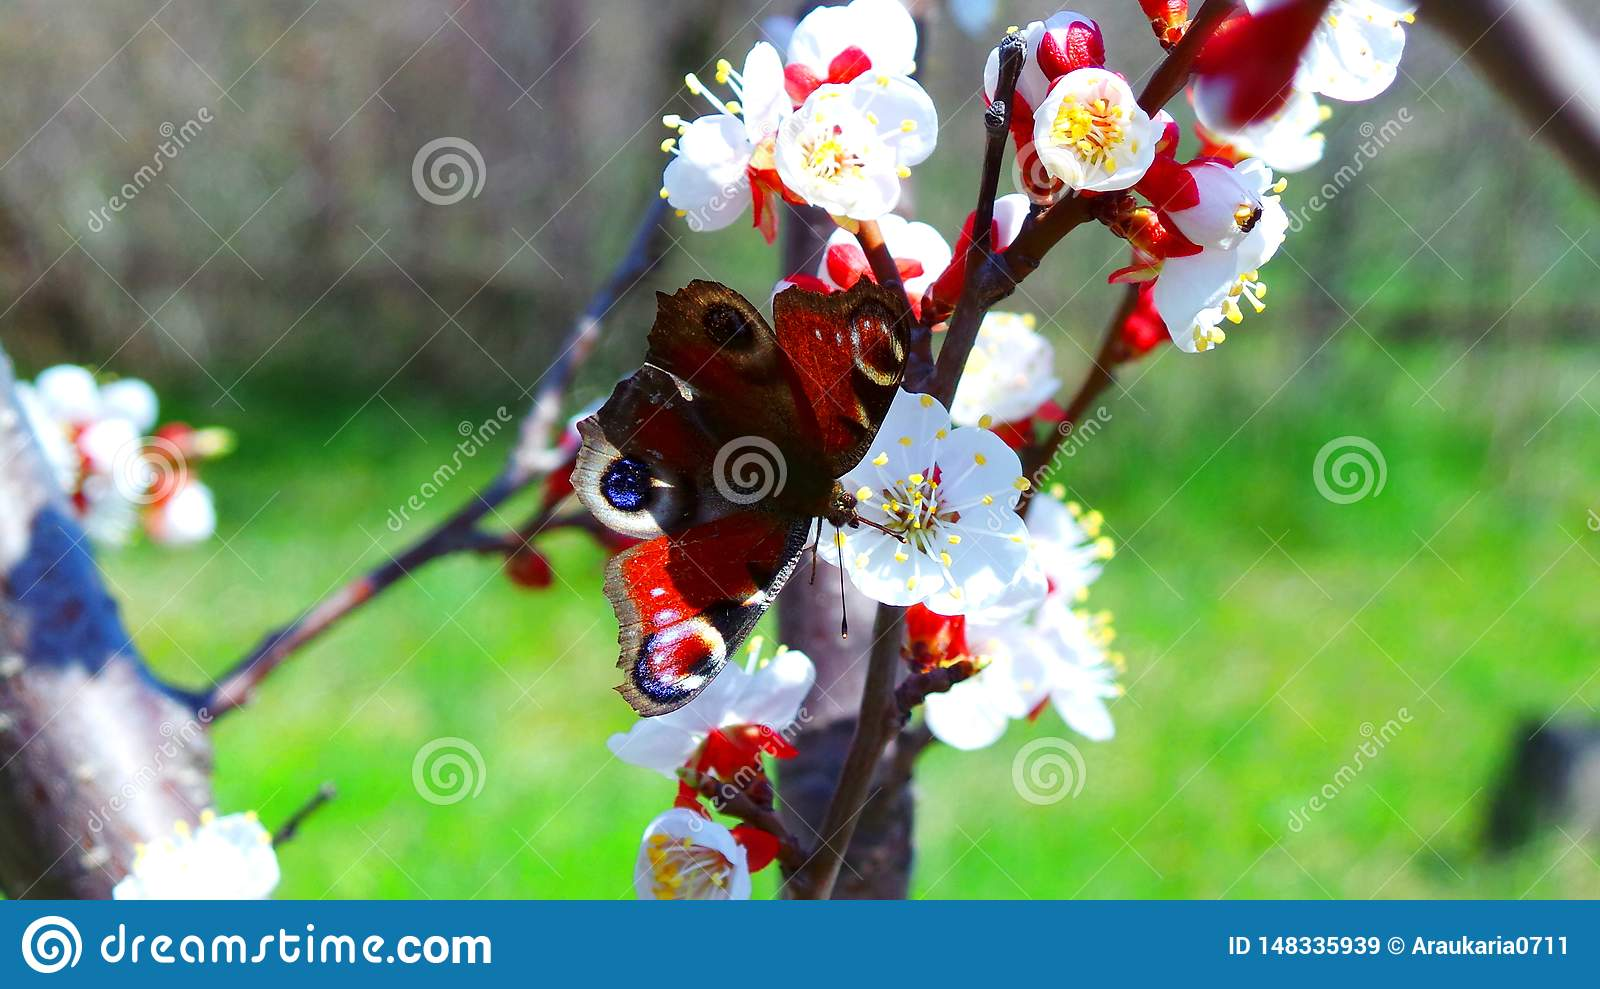 A peacock butterfly drinks nectar on a flowering apricot tree in a garden in May